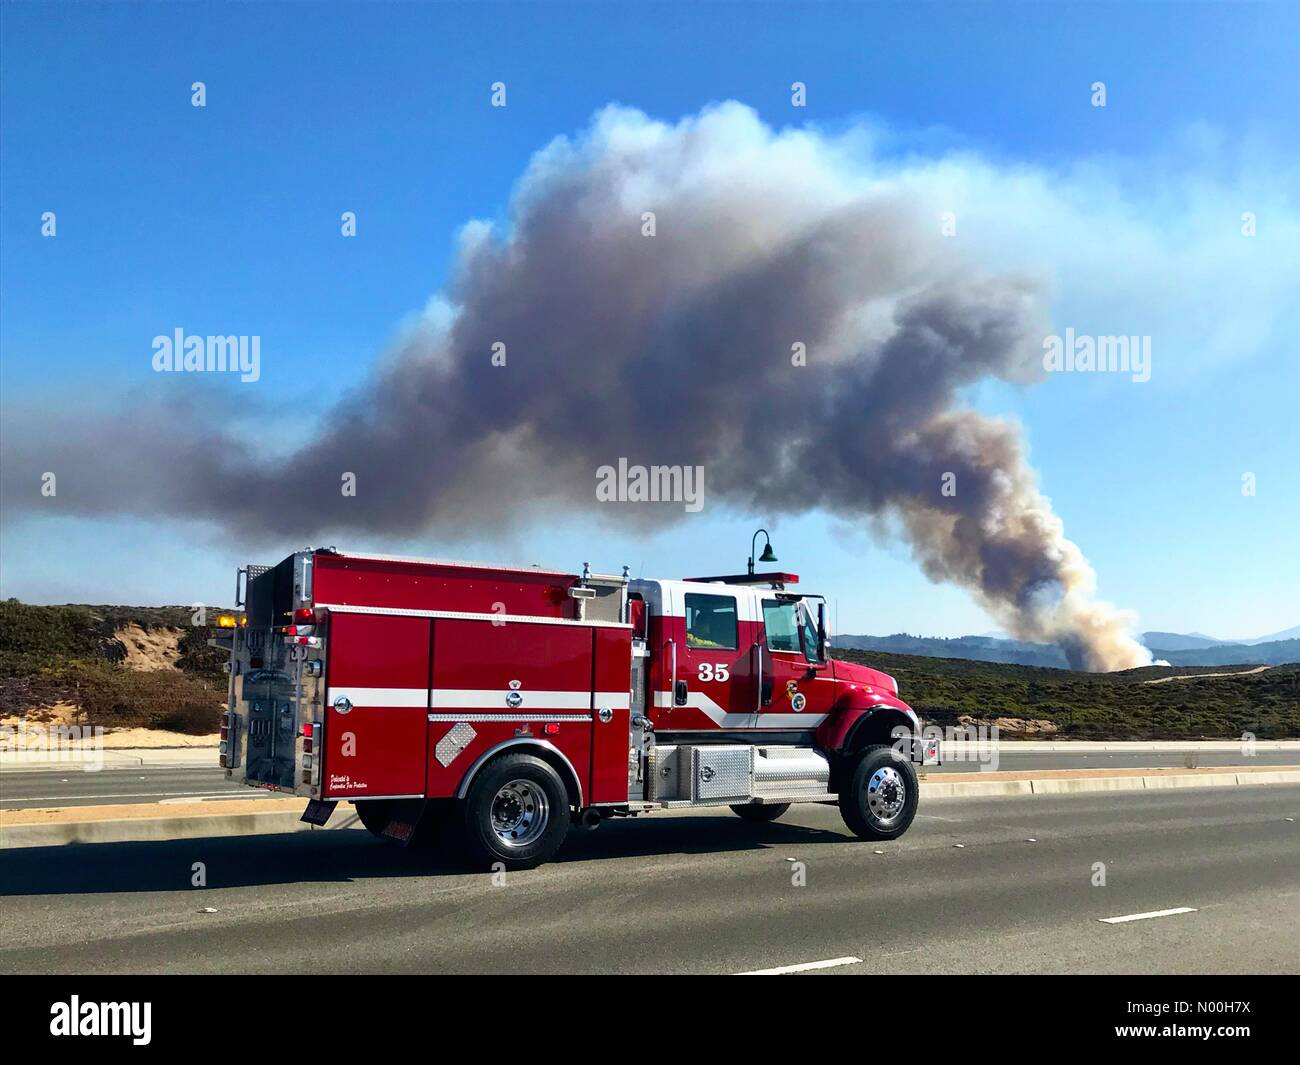 Fire truck on its way to a wildfire. - Stock Image